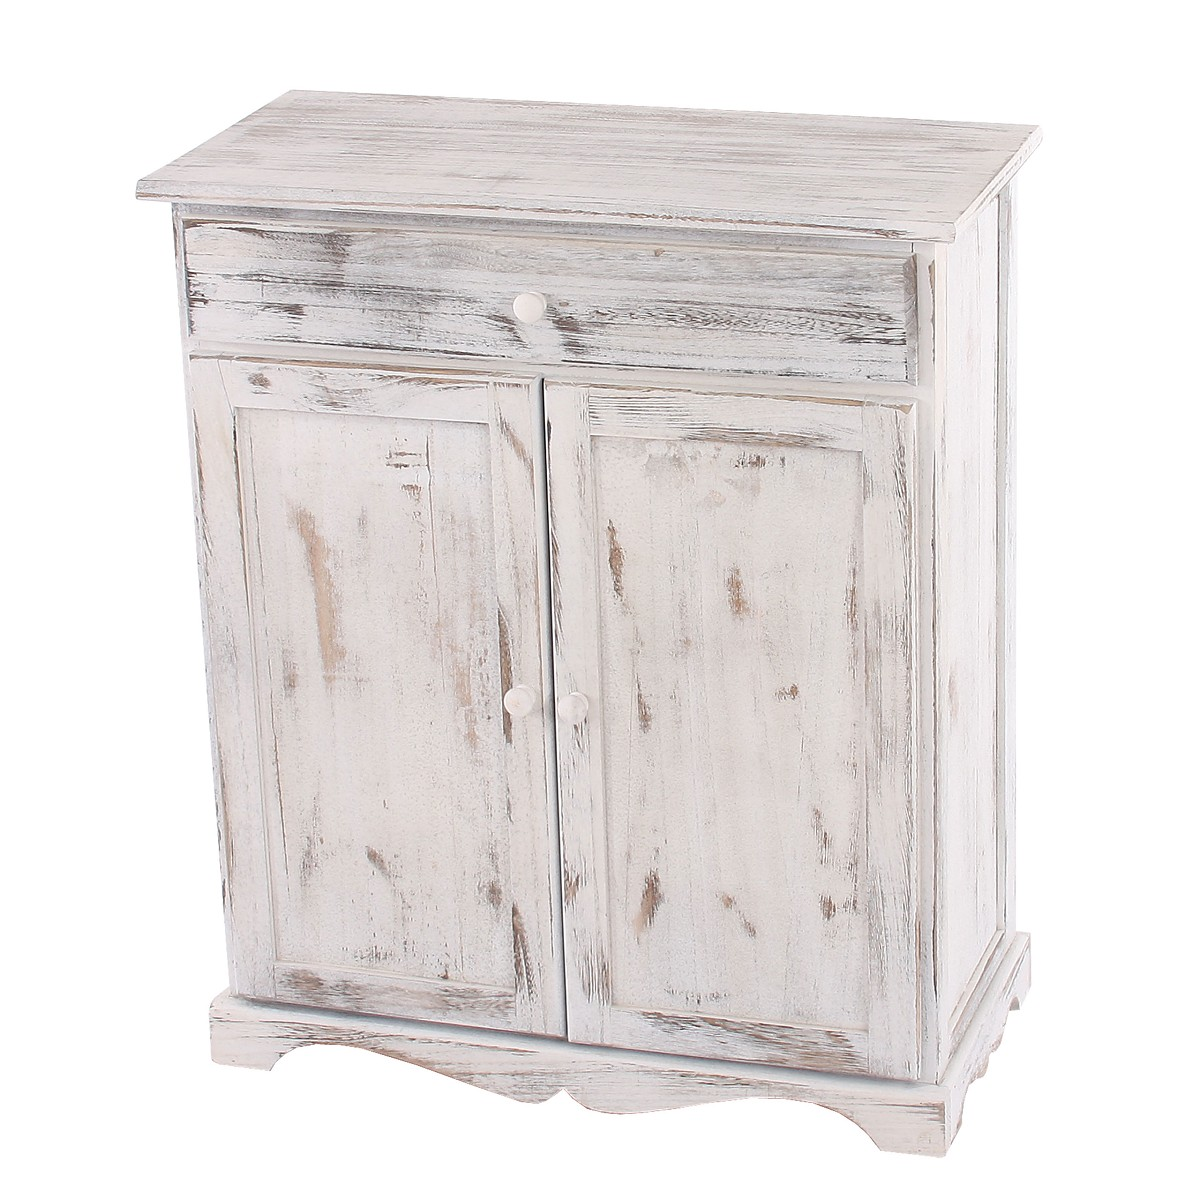 kommode 78x66x33cm shabby look vintage weiss. Black Bedroom Furniture Sets. Home Design Ideas